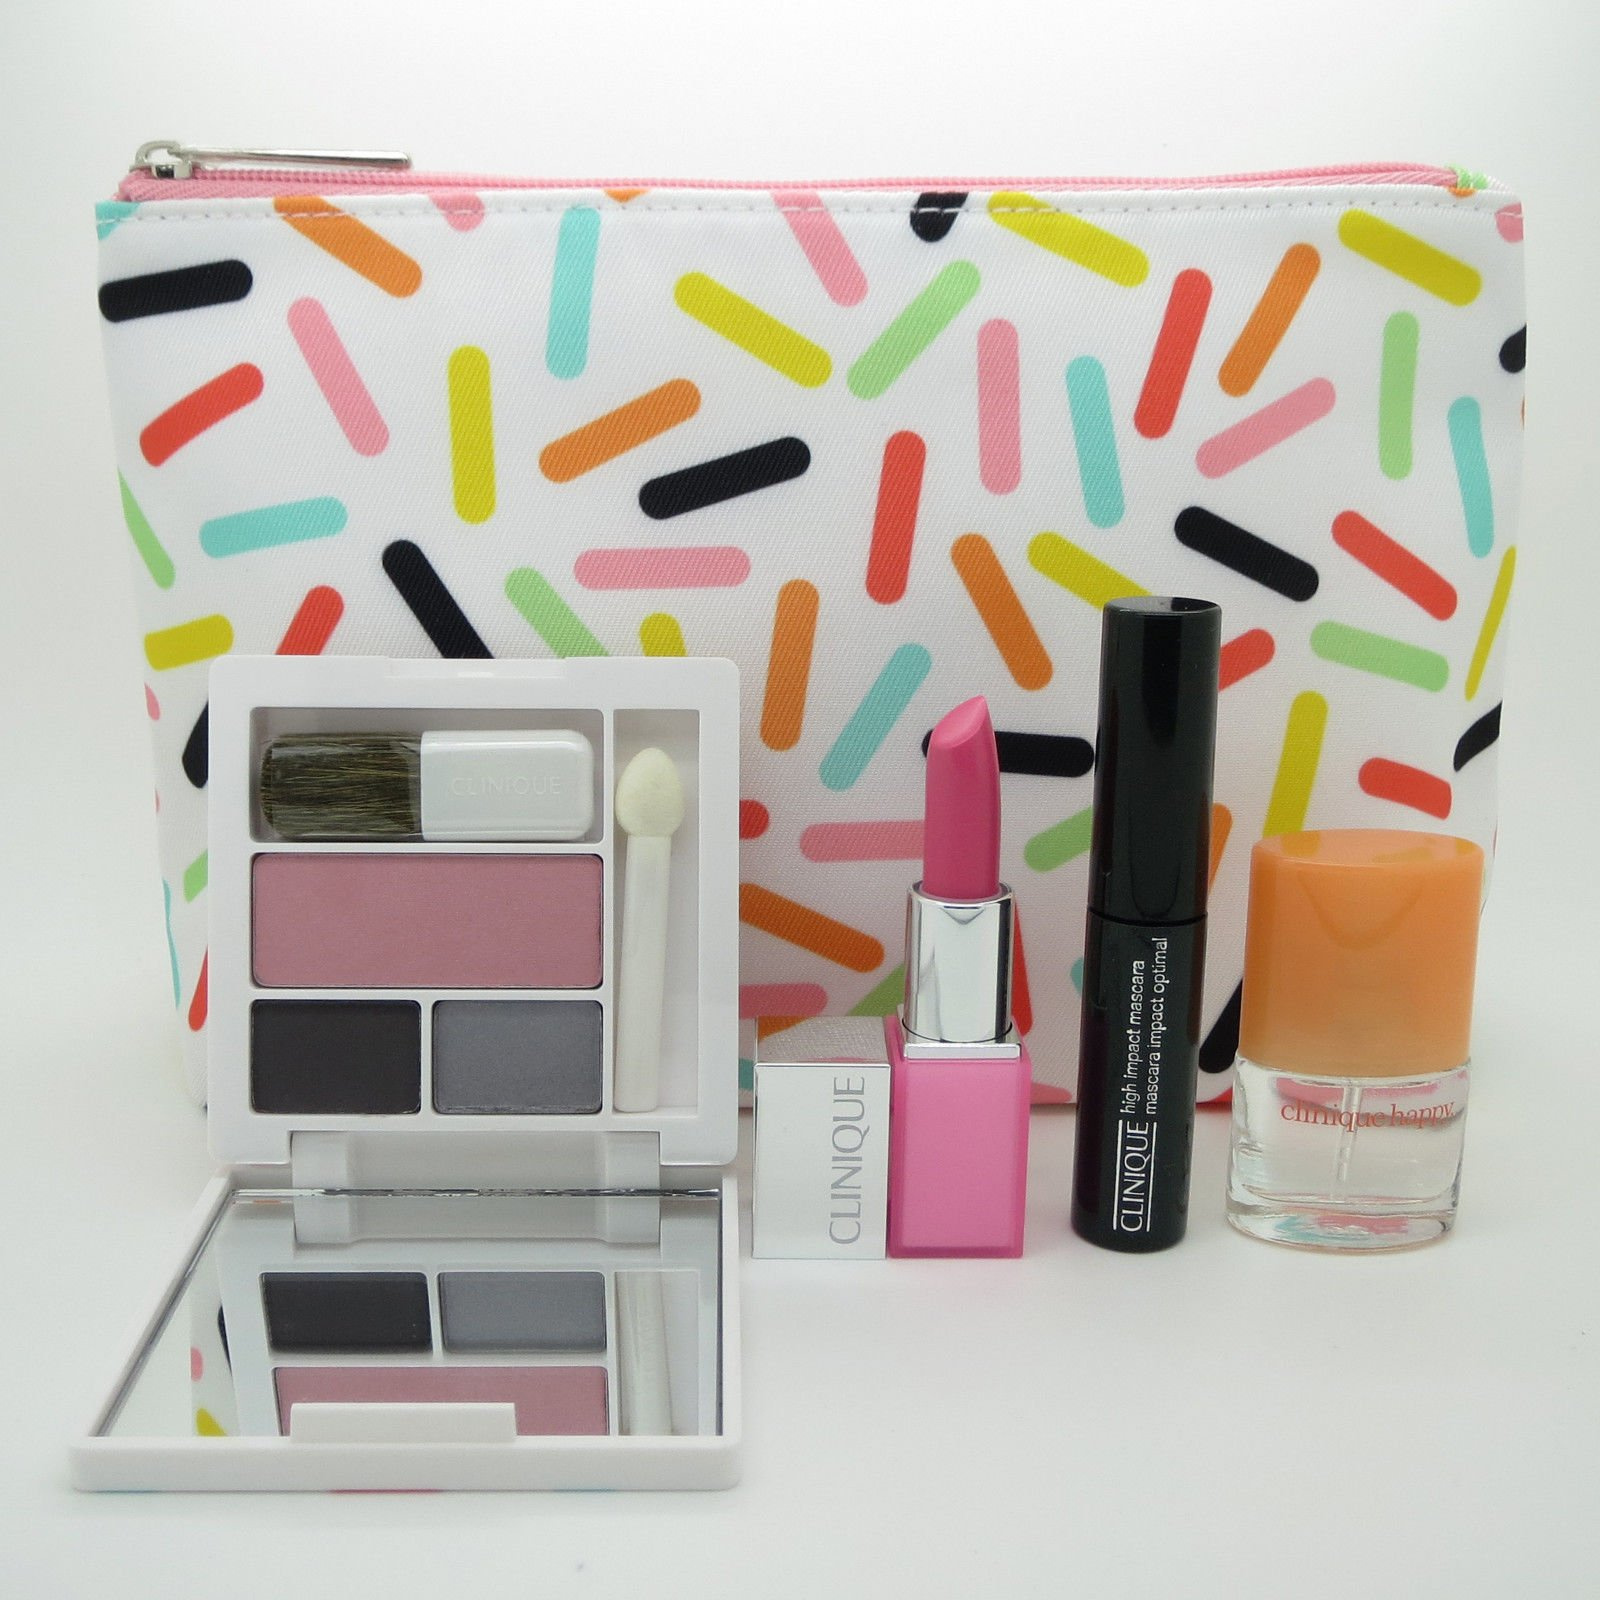 New! Clinique 2016 Fall 5-PC Makeup Gift Set - Pink, Sealed